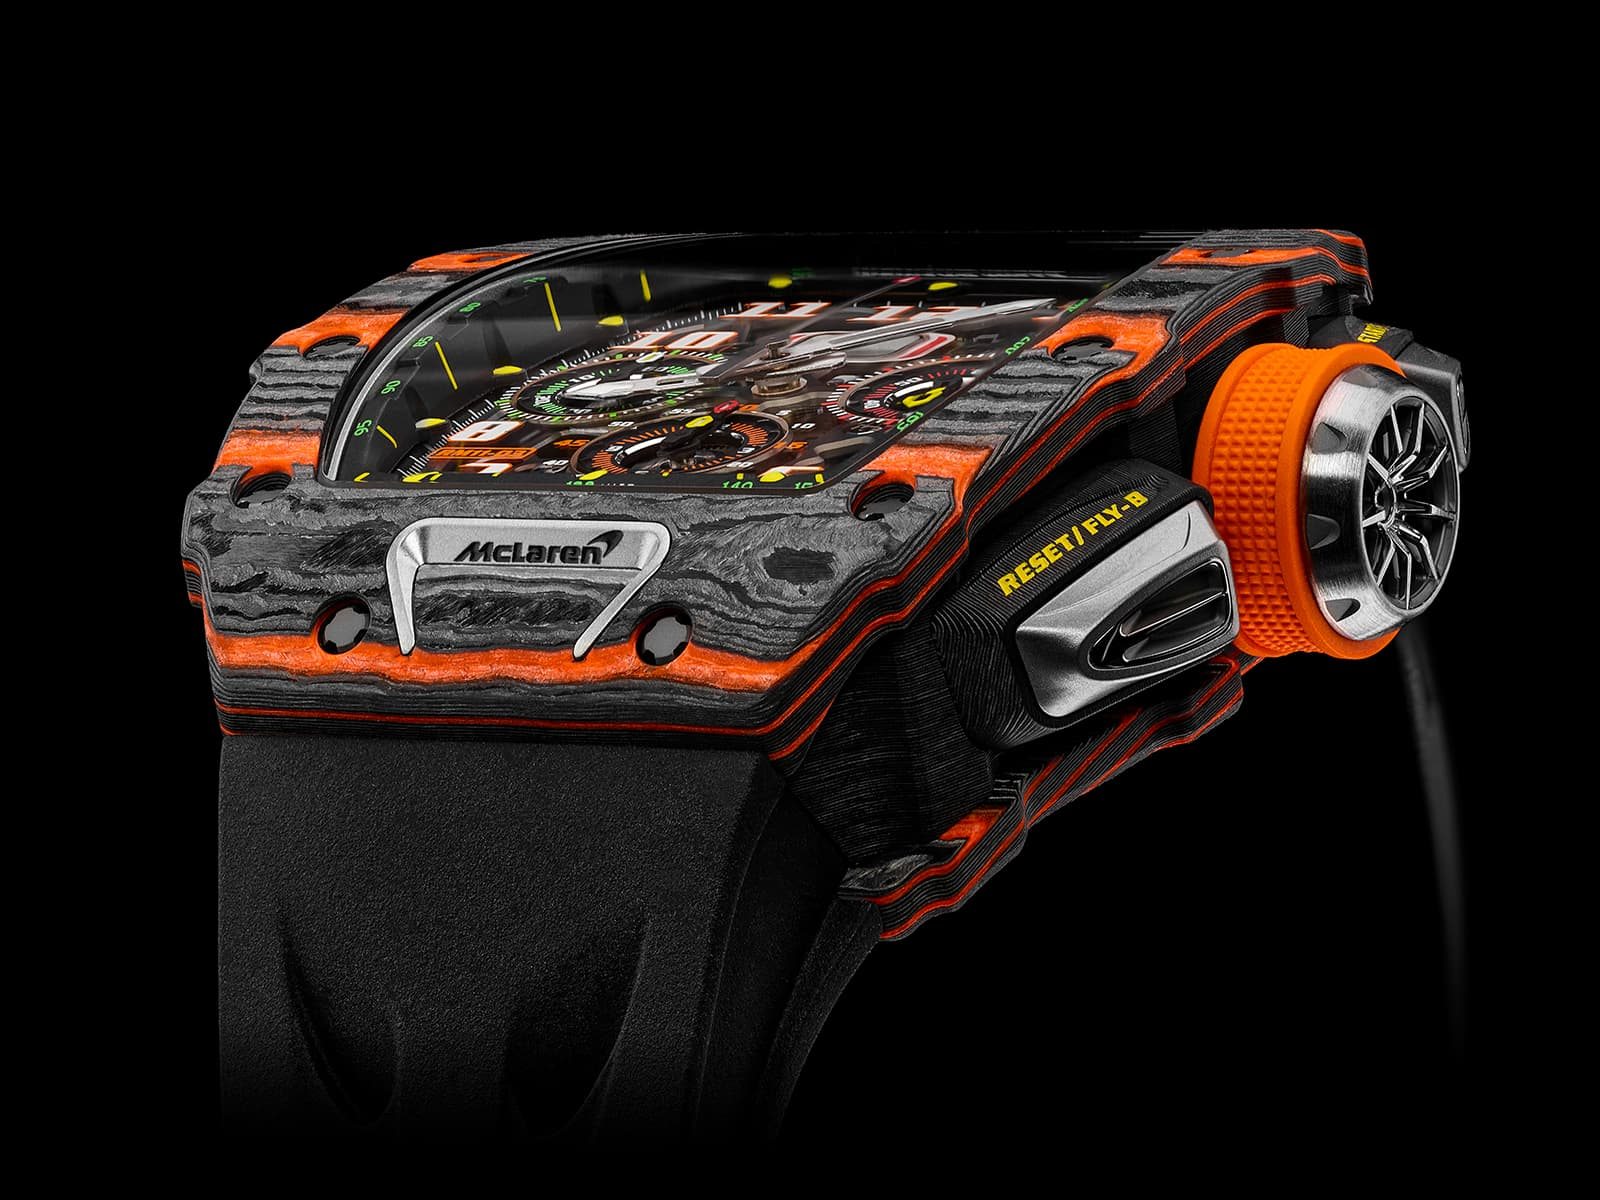 richard-mille-rm-11-03-mcLaren-automatic-flyback-chronograph-16-.jpg